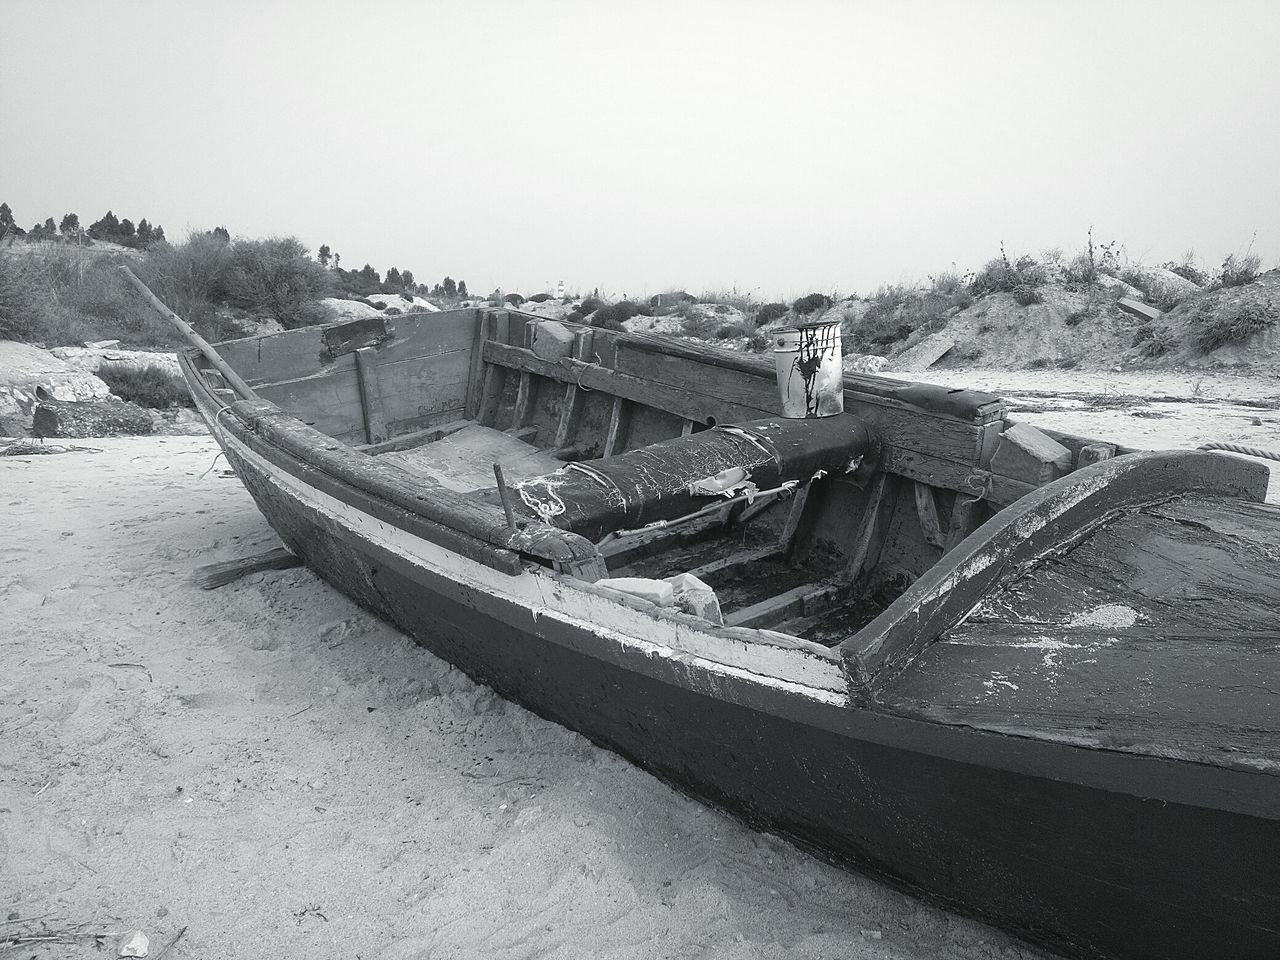 Nautical Vessel Transportation Old Boat Old Boats Ruins Wooden Texture Beach Wood - Material Boats And Clouds Sand EyeEmNewHere